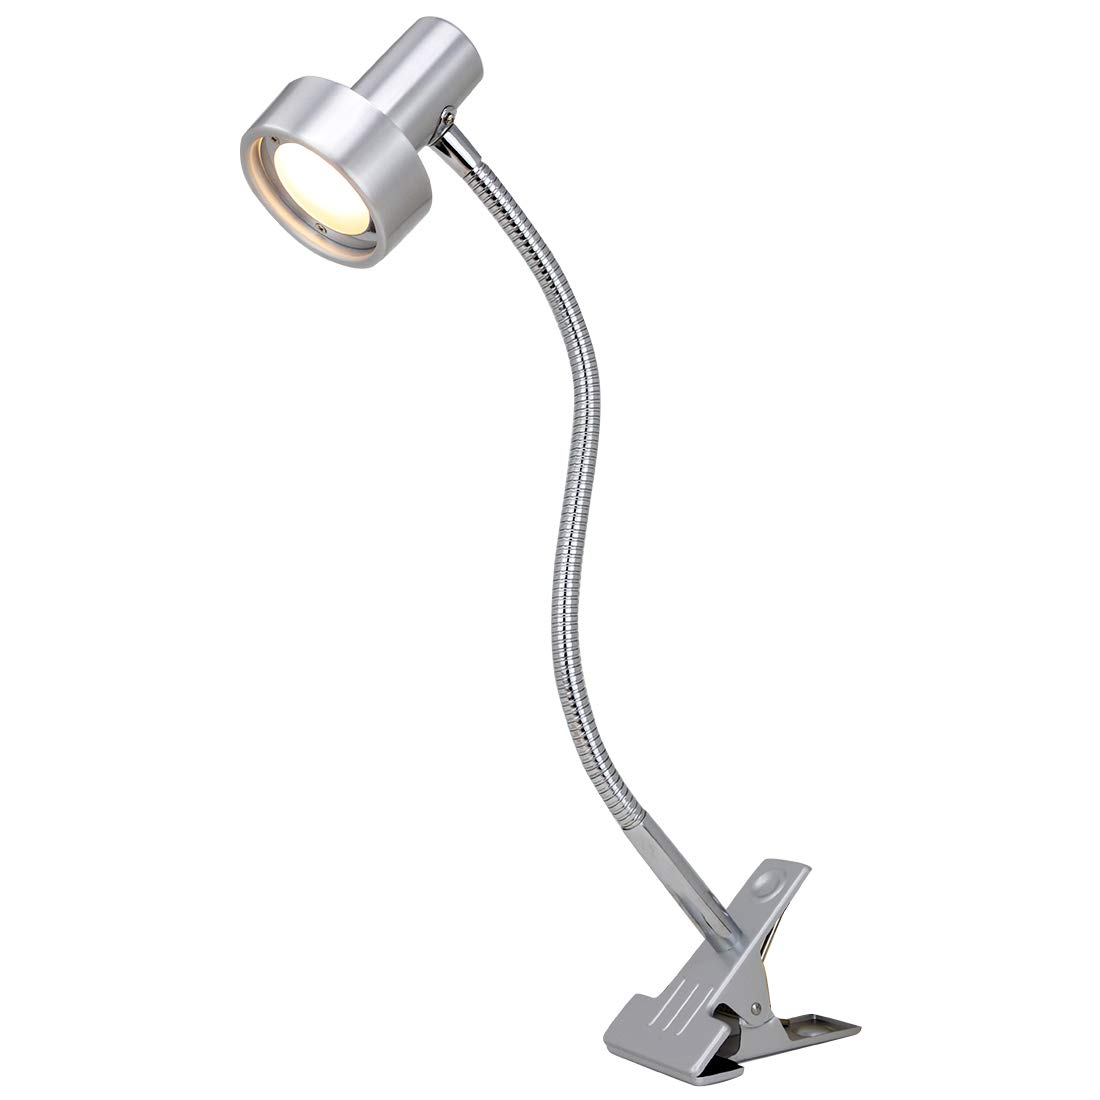 O'Bright LED Clip on Light for Bed Headboard/Desk, Dimmable LED Desk Lamp with Metal Clamp, 5W LED, Flexible Gooseneck, Adjustable Brightness for Eye-Care Reading, Vintage Design (Aluminum)